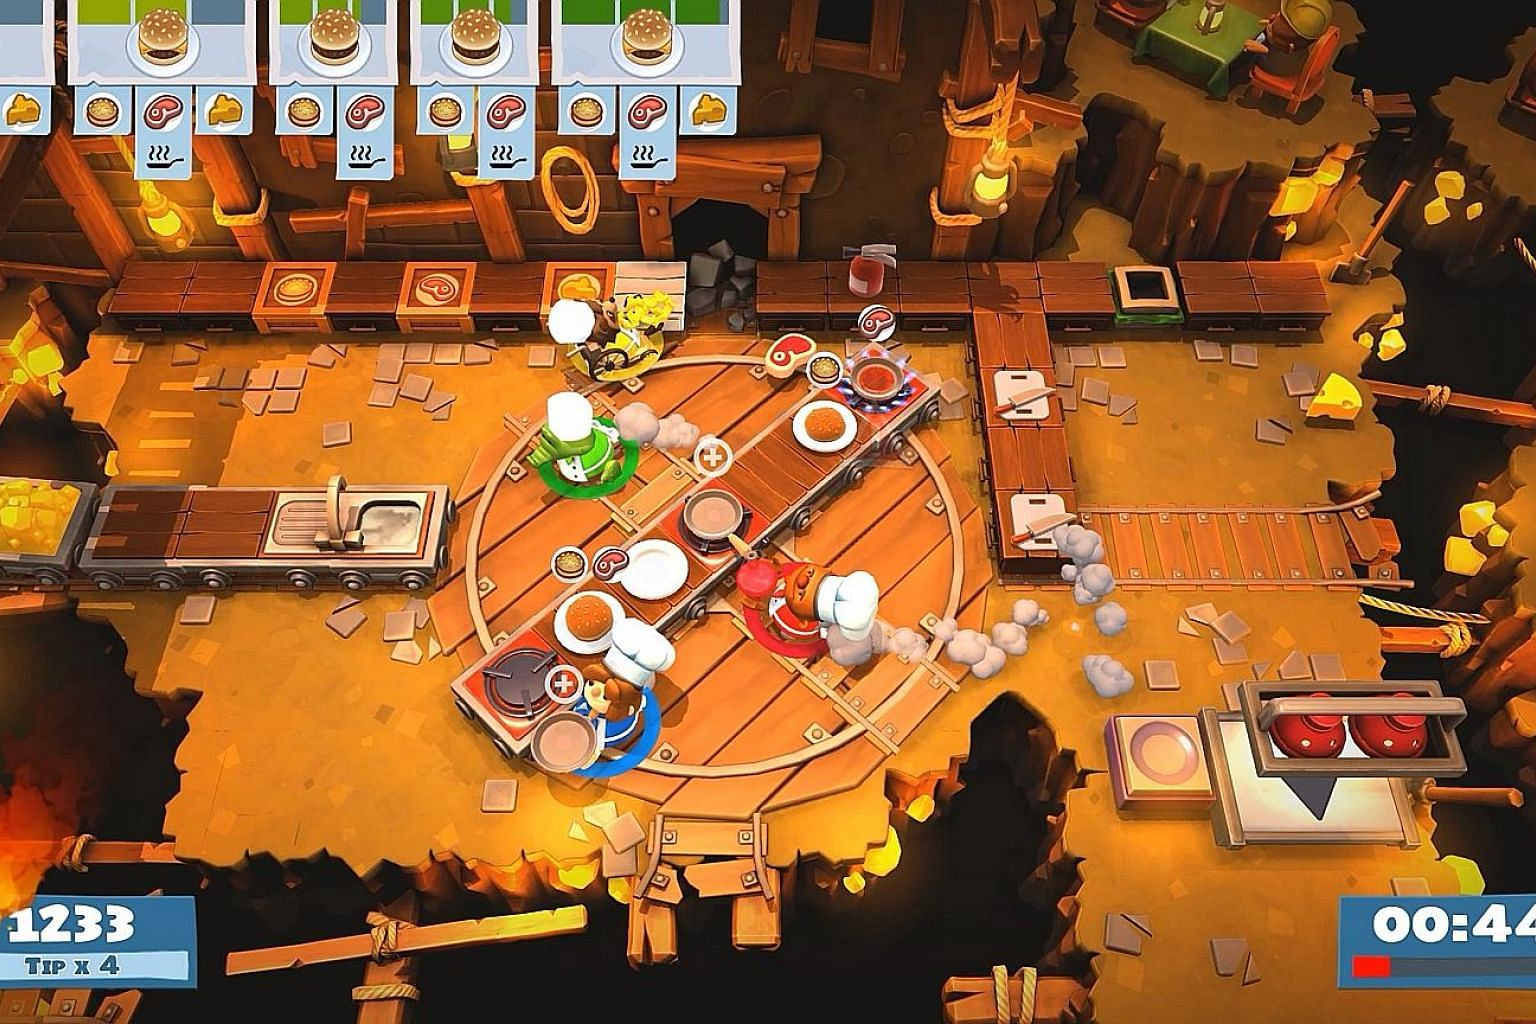 Overcooked 2 includes the ability to toss ingredients to fellow players.